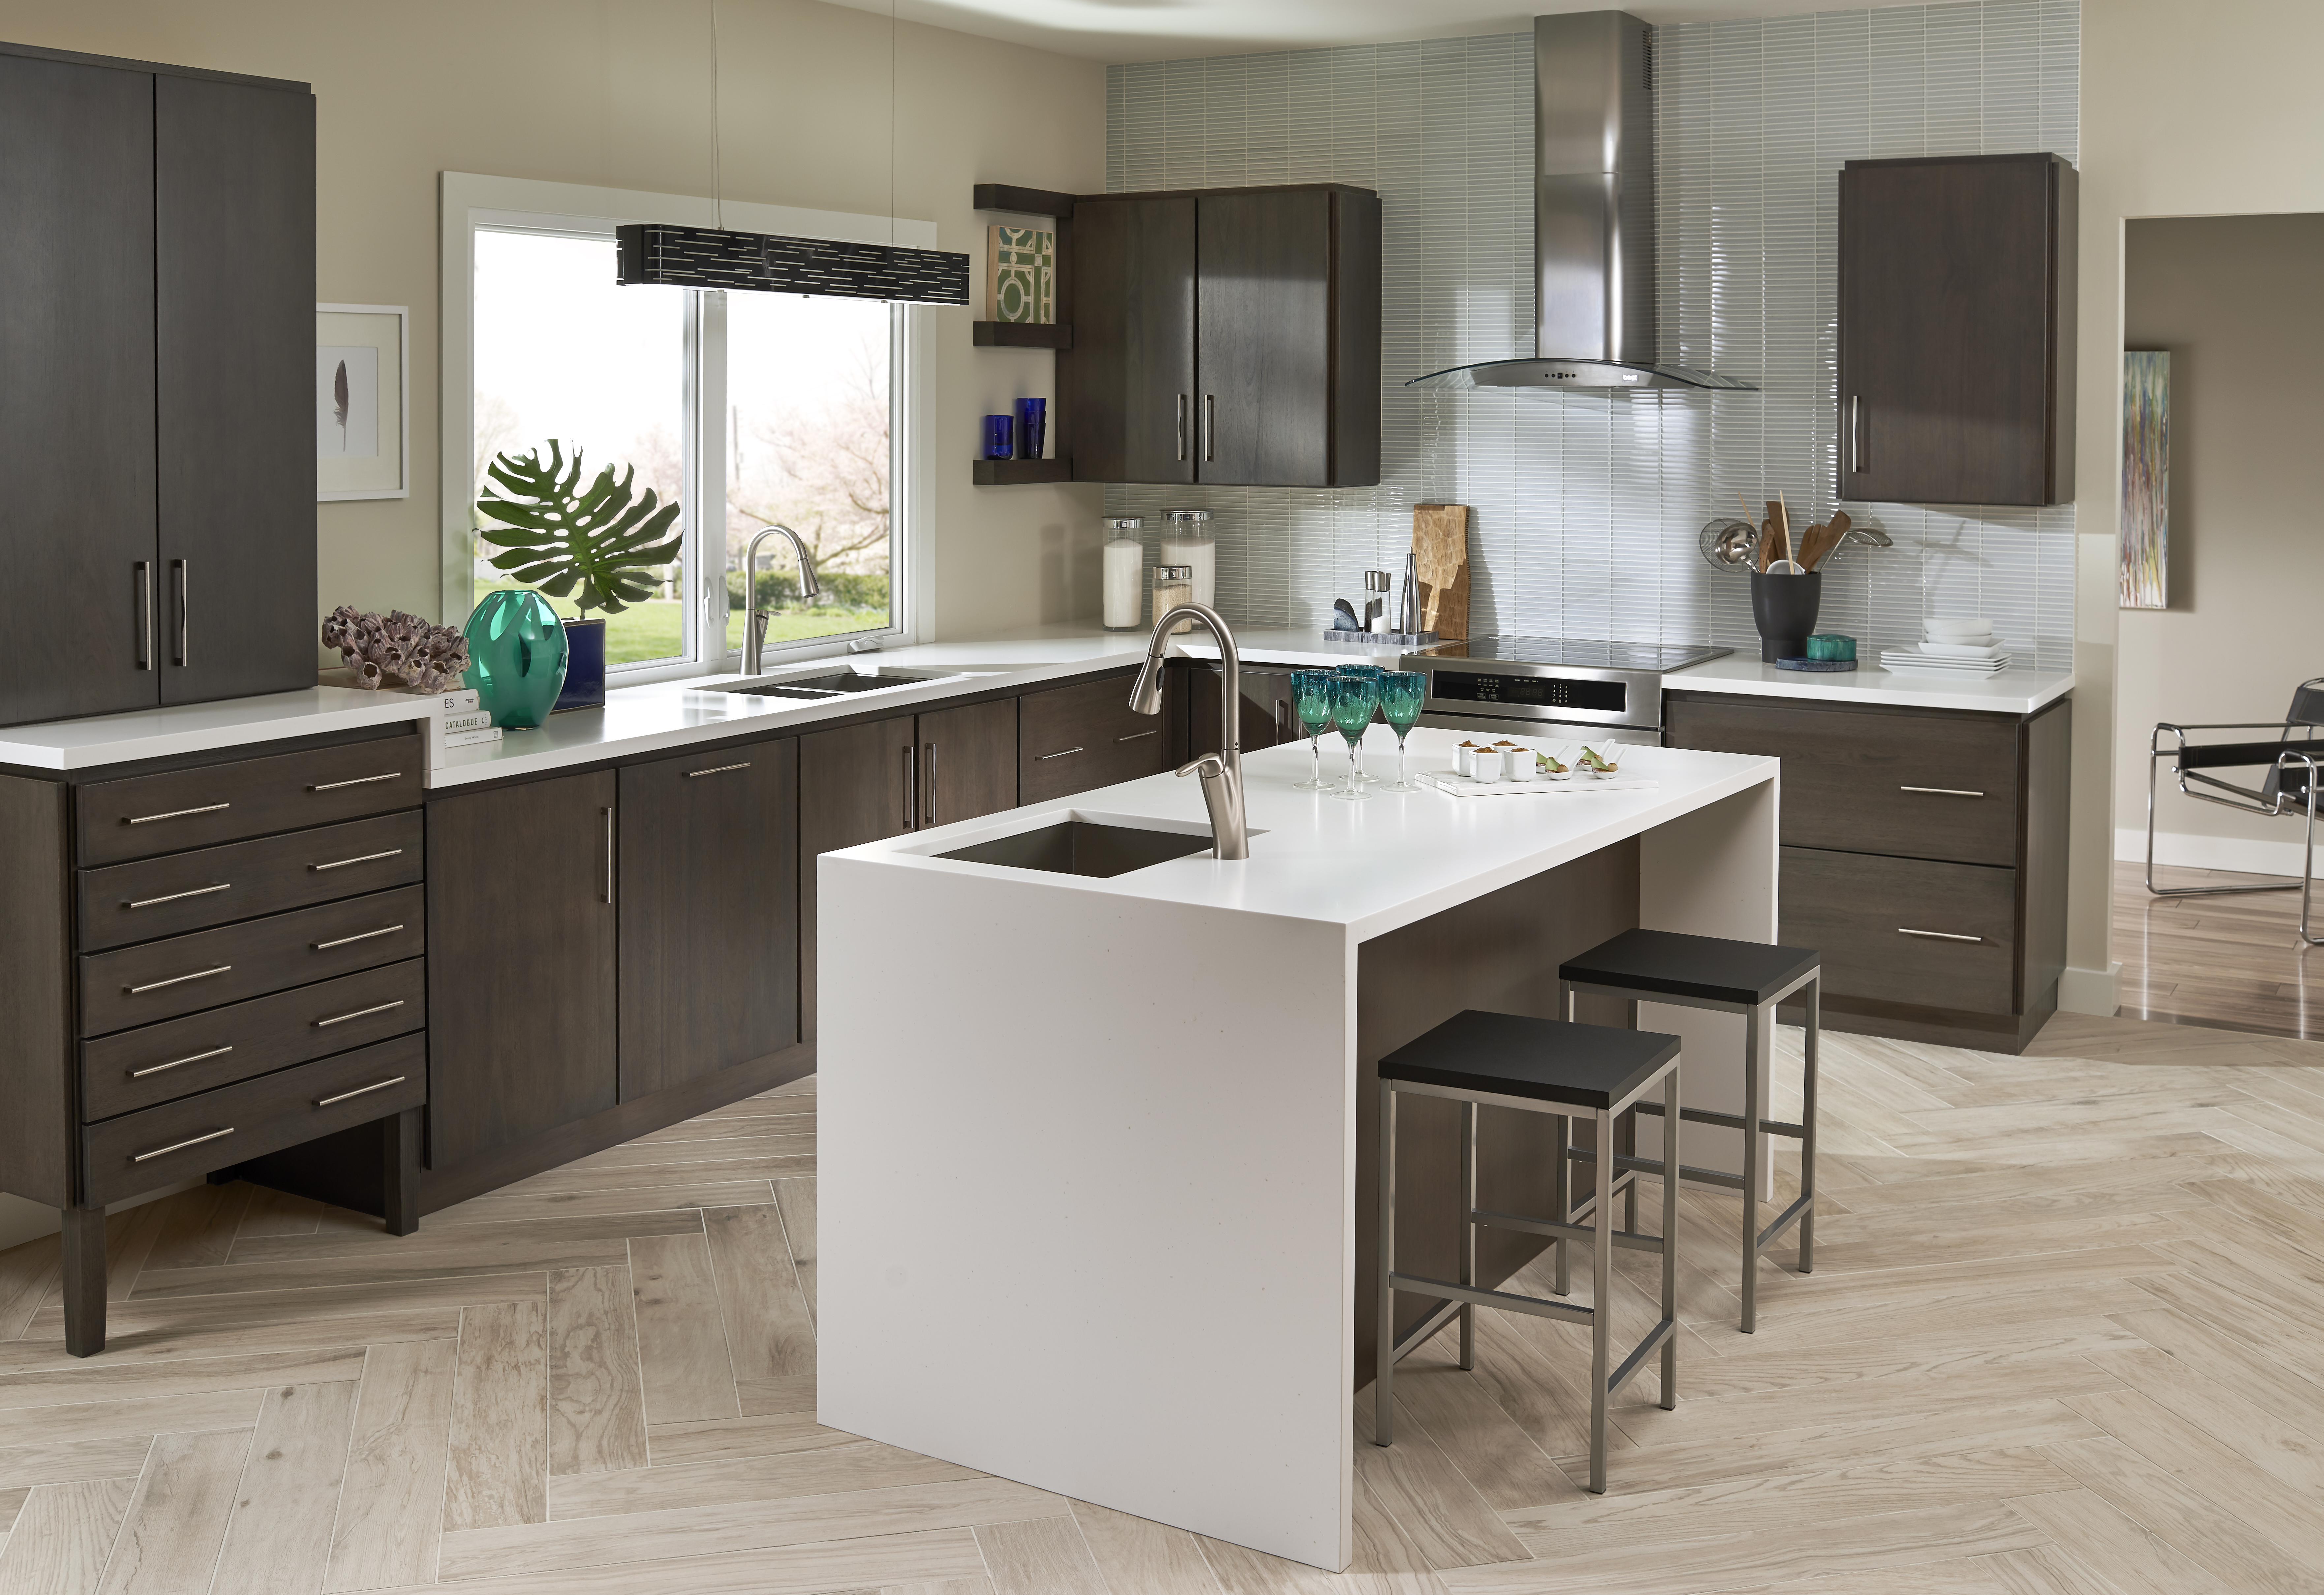 solid surface countertop kitchen in corian color Jasmine White